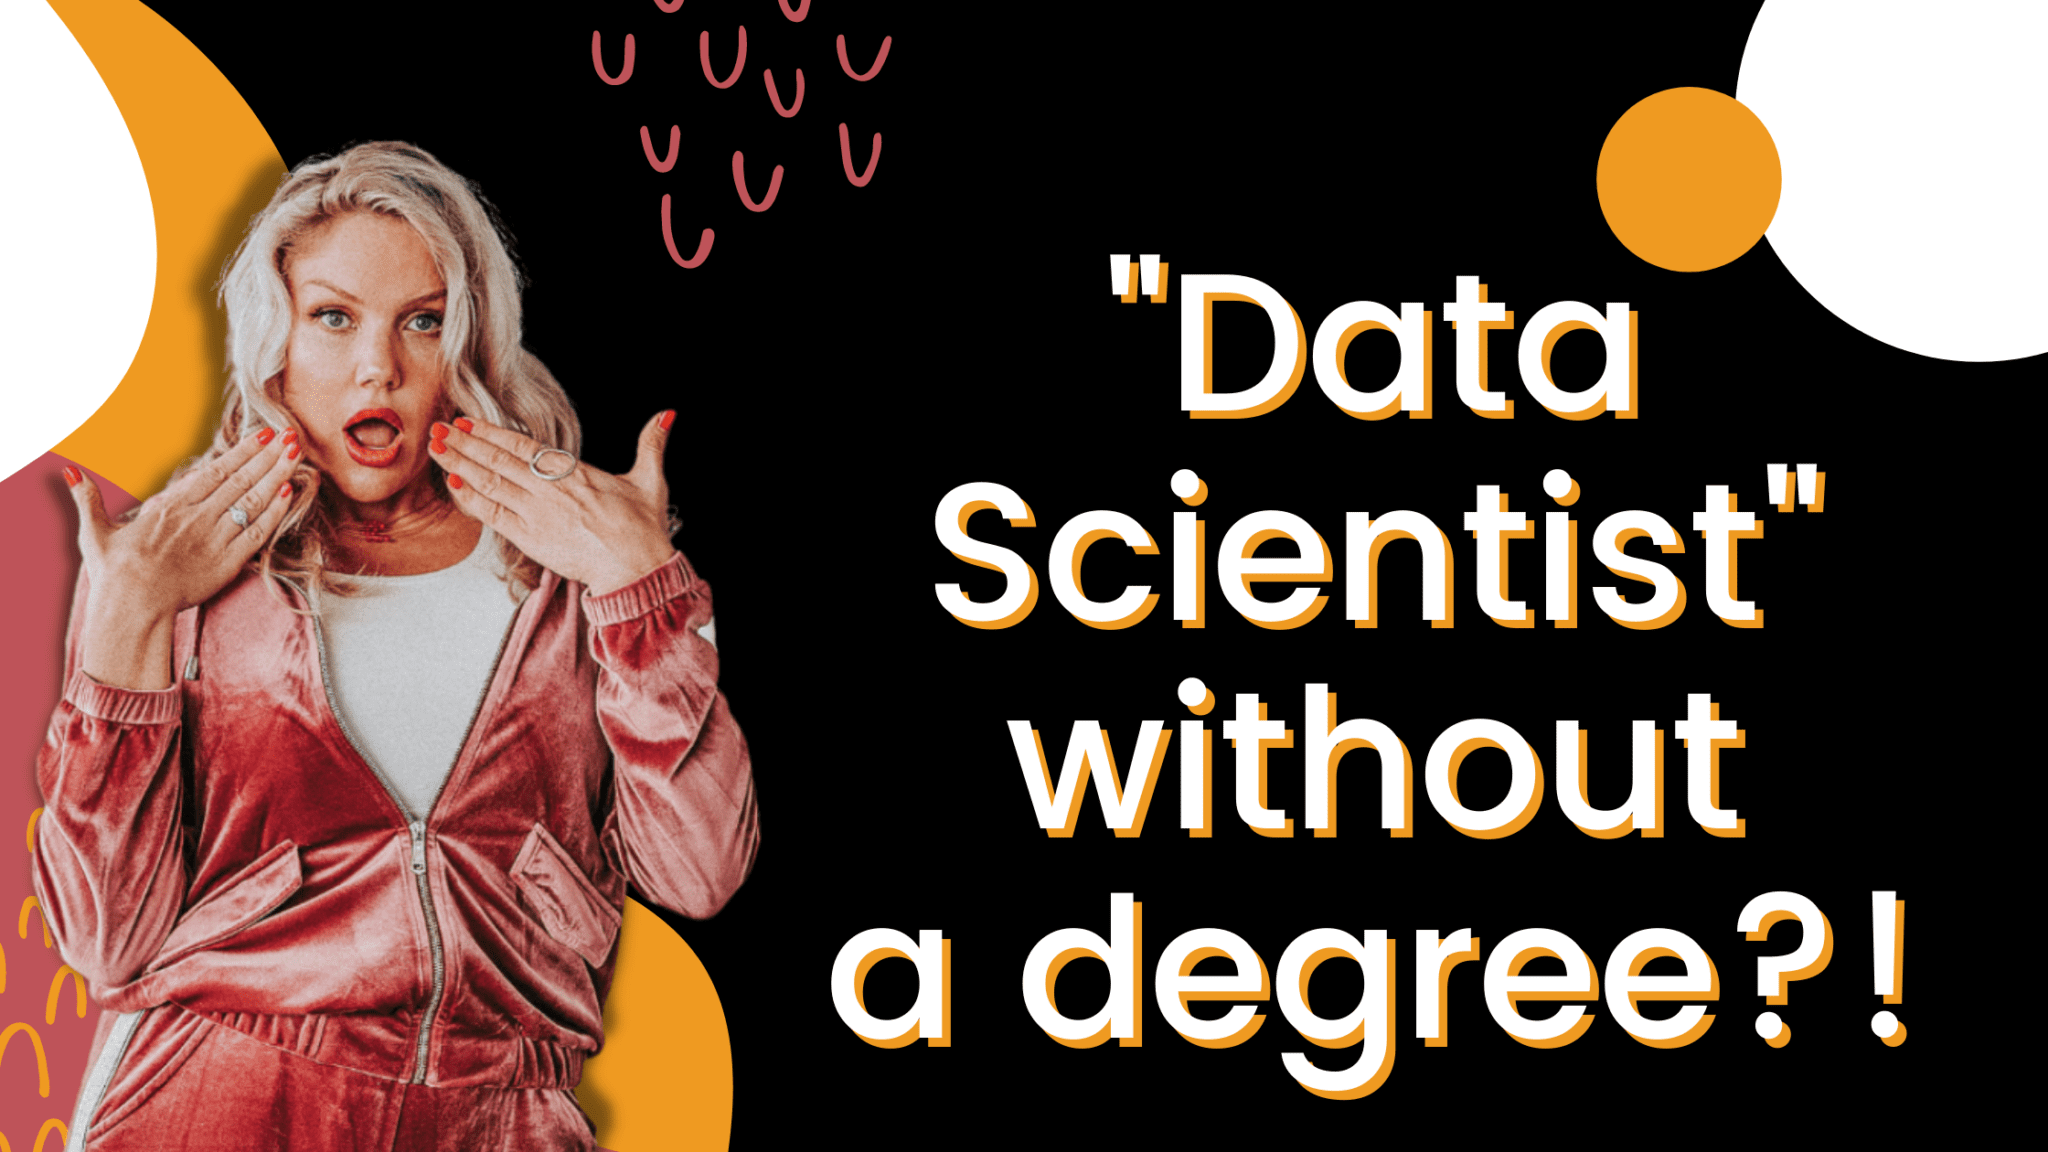 can you become a Data Scientist without a degree